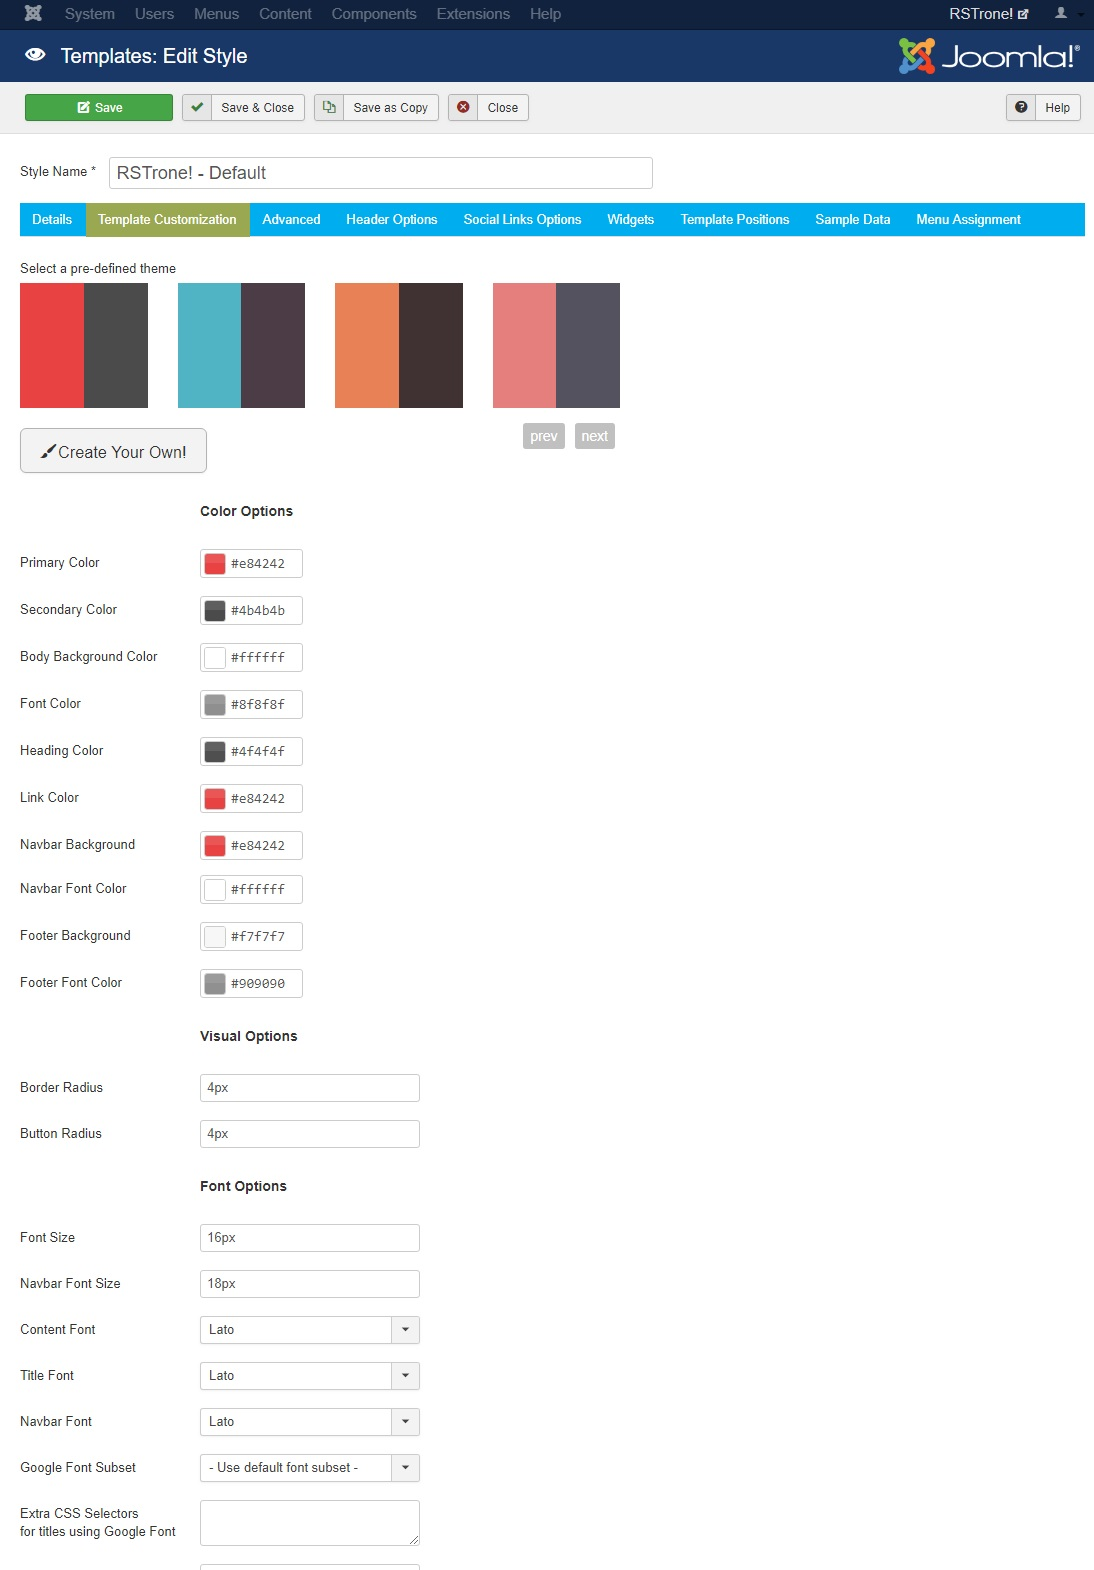 RSTrone! Joomla! 3.x template Advanced Tab preview 1